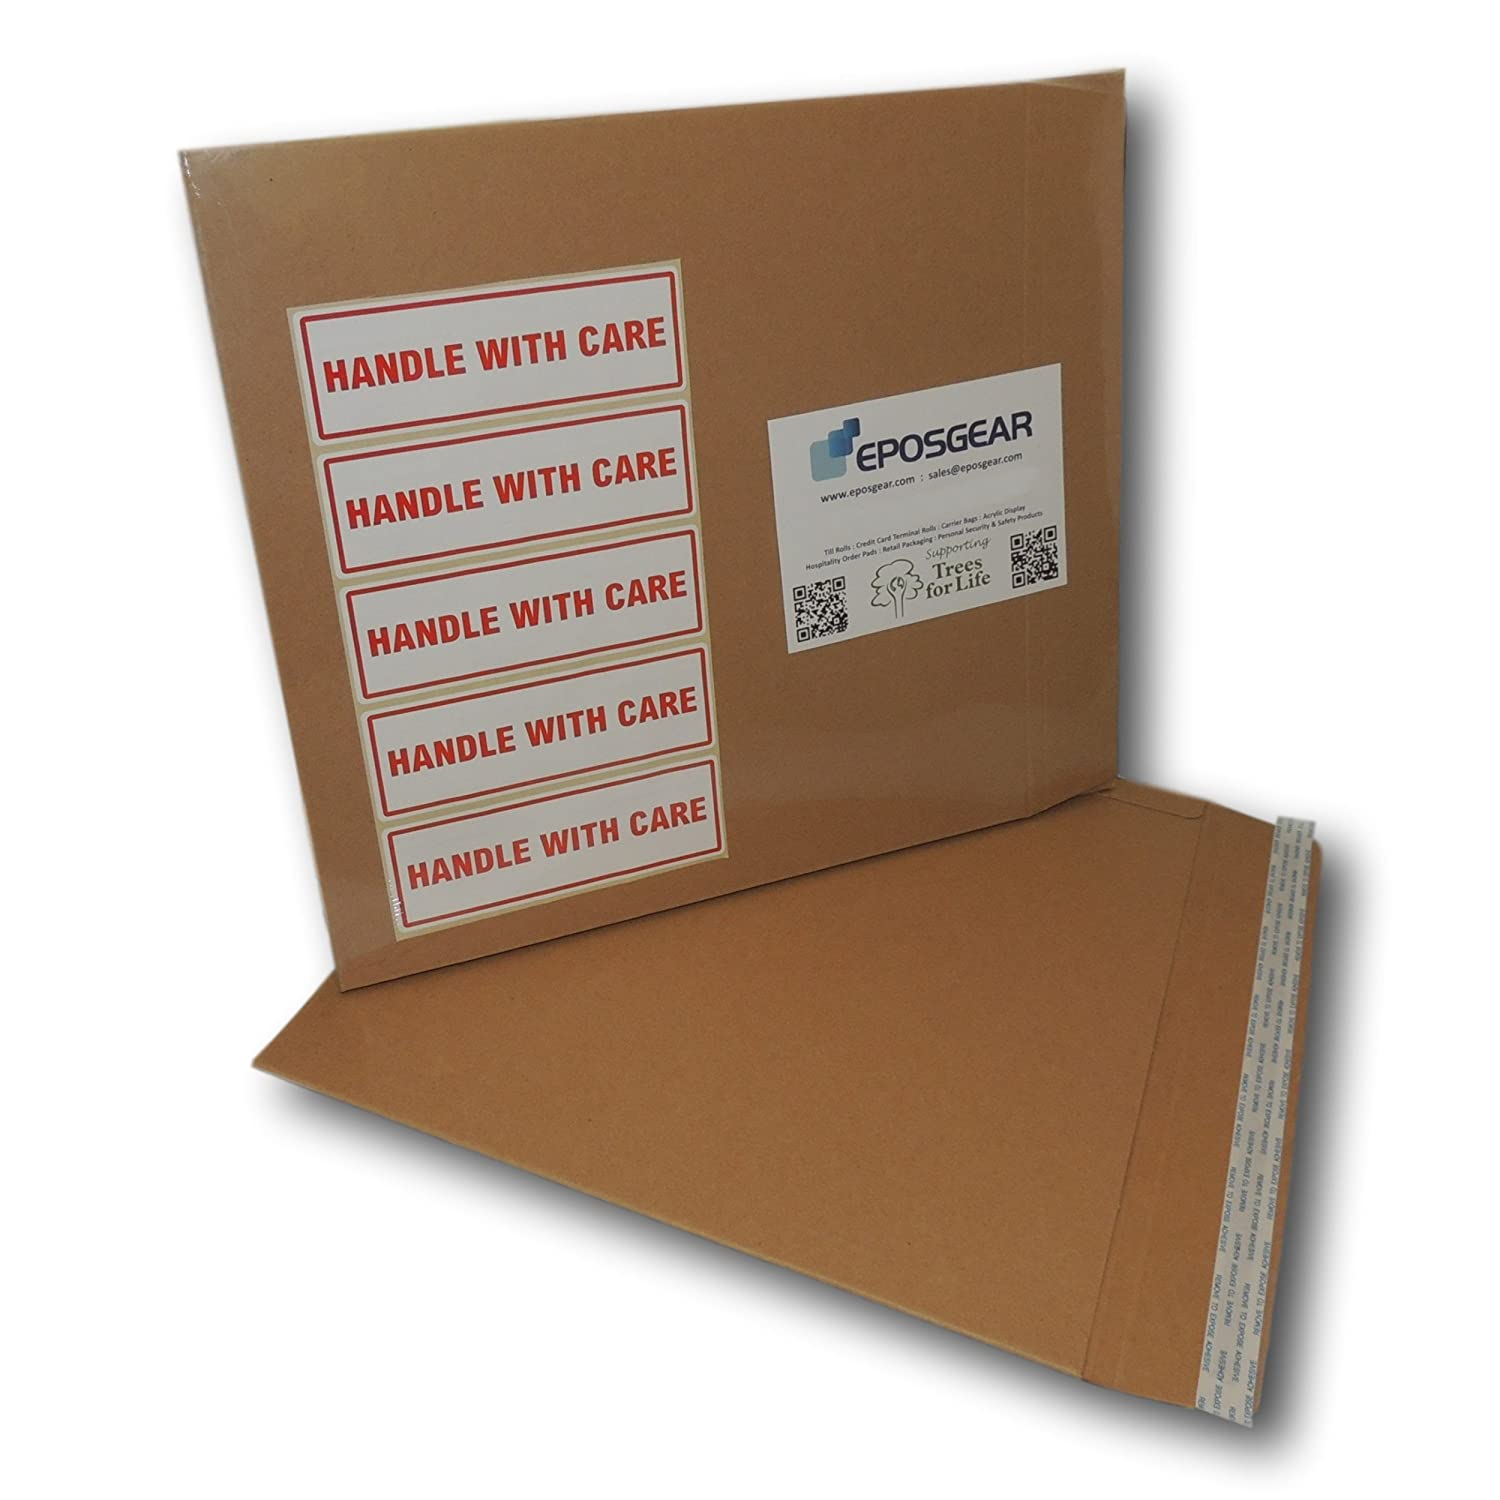 EPOSGEAR 25 Pack 650gsm 12 Record LP Strong Peel and Seal All Board Card Manilla Brown Envelopes Mailers 355mm x 345mm with FREE Handle With Care Labels